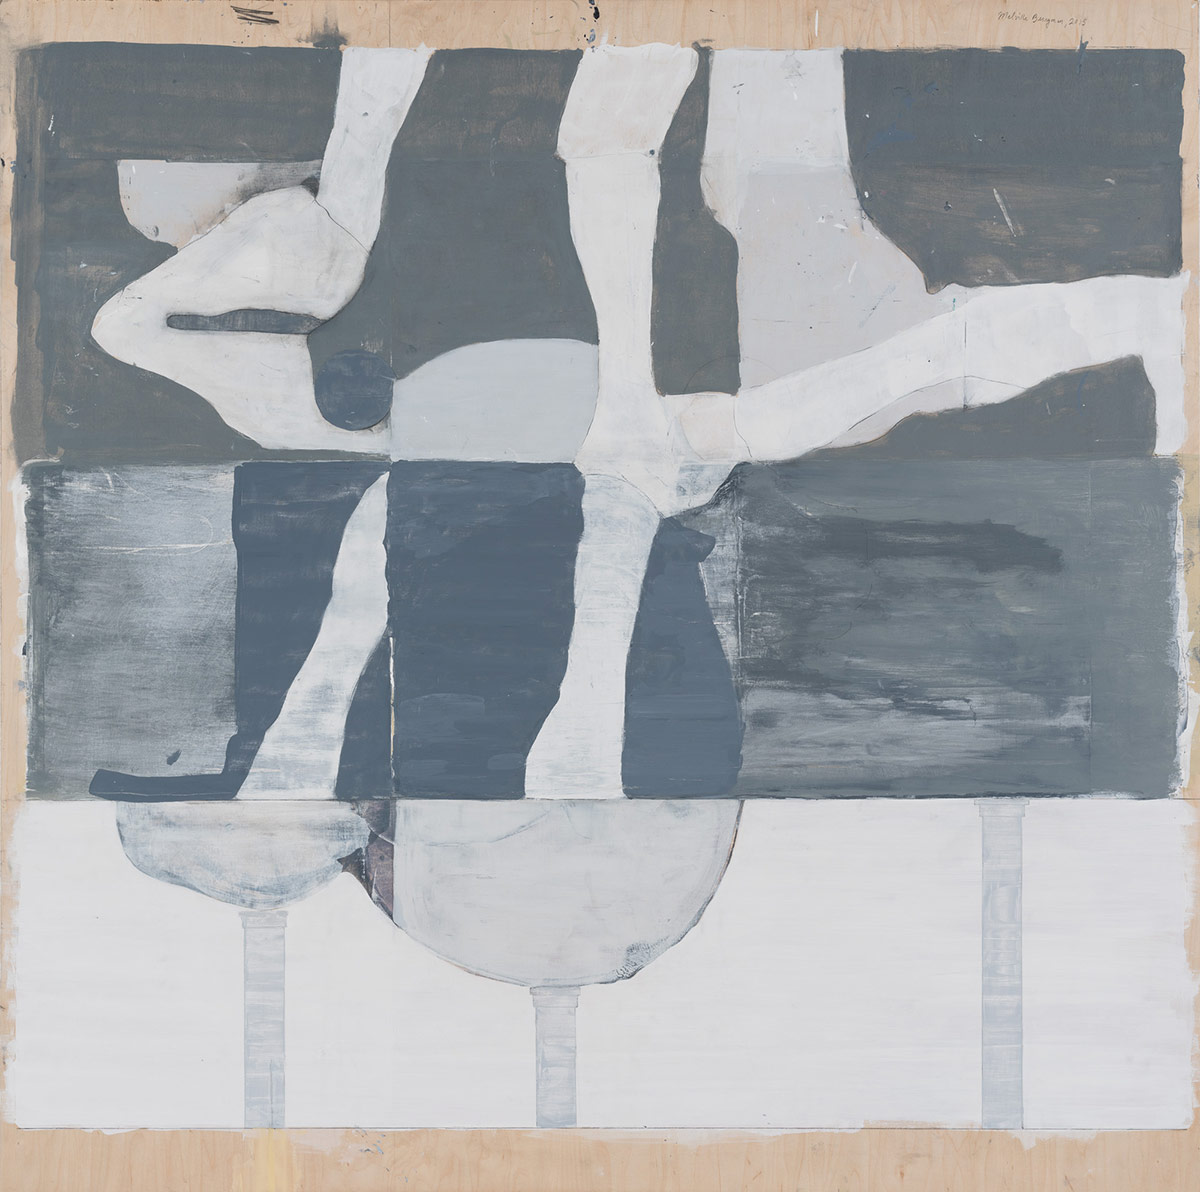 """Melville/Berryman,  2014. Acrylic, acrylic polymer and graphite on wood panel. 49""""x48"""""""